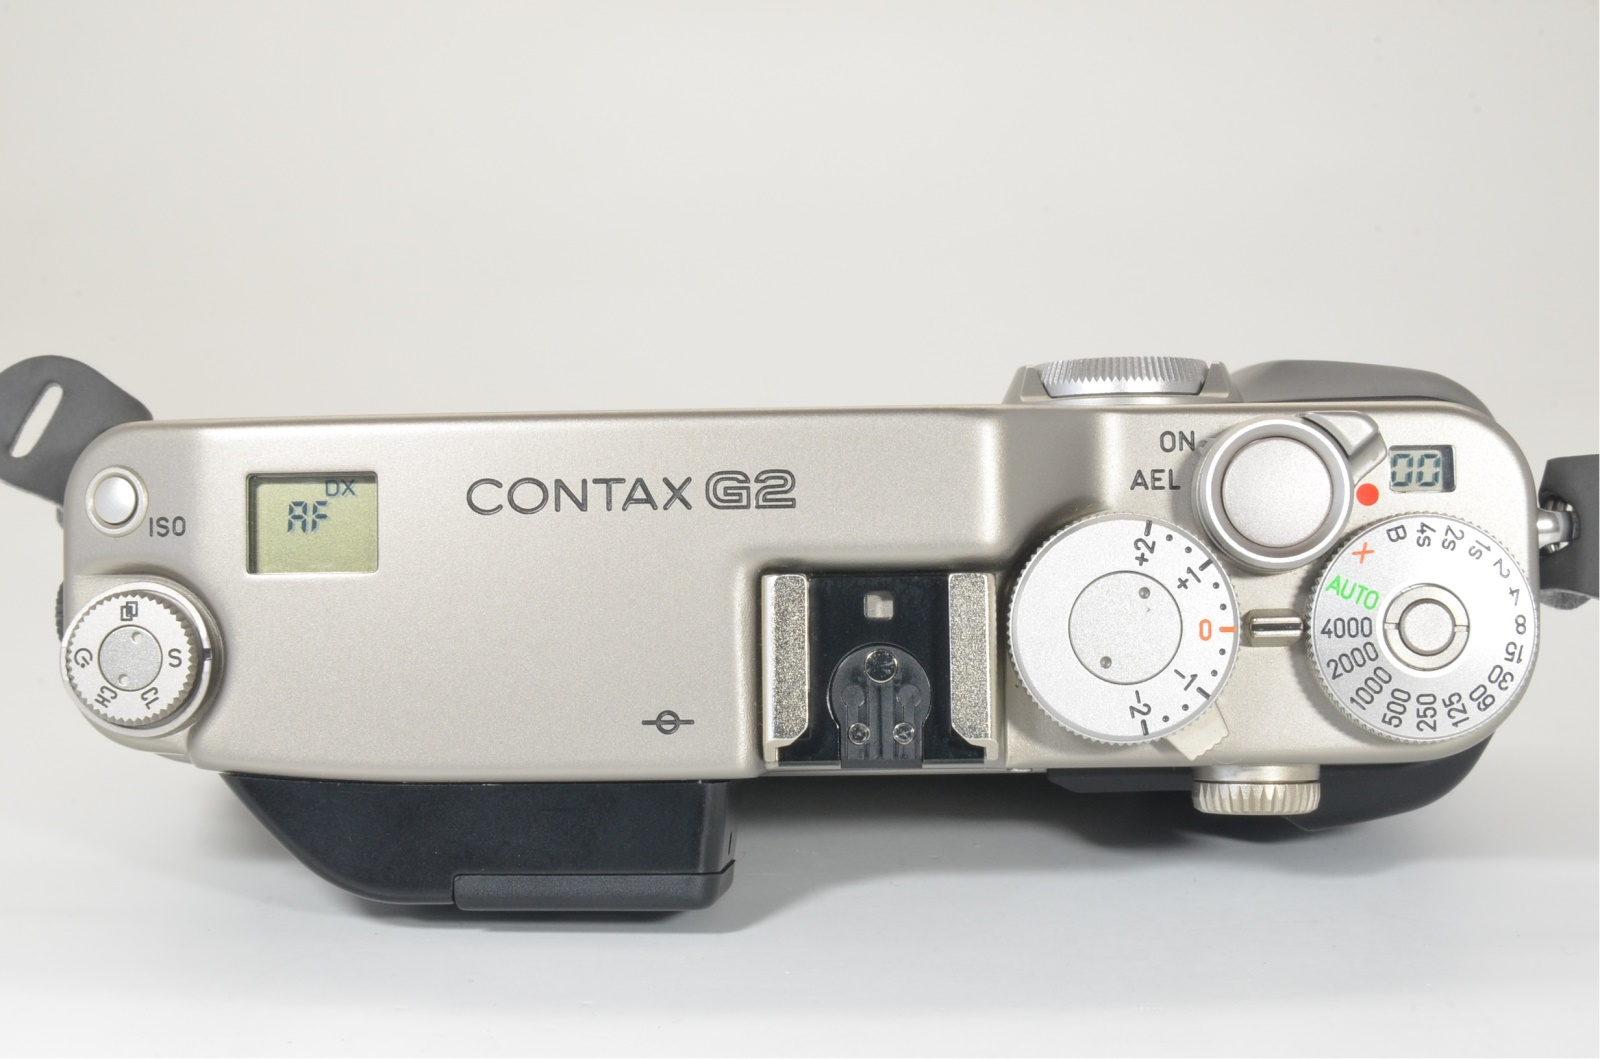 contax g2, planar 35mm, biogon 21mm, sonnar 90mm, tla200 shooting tested